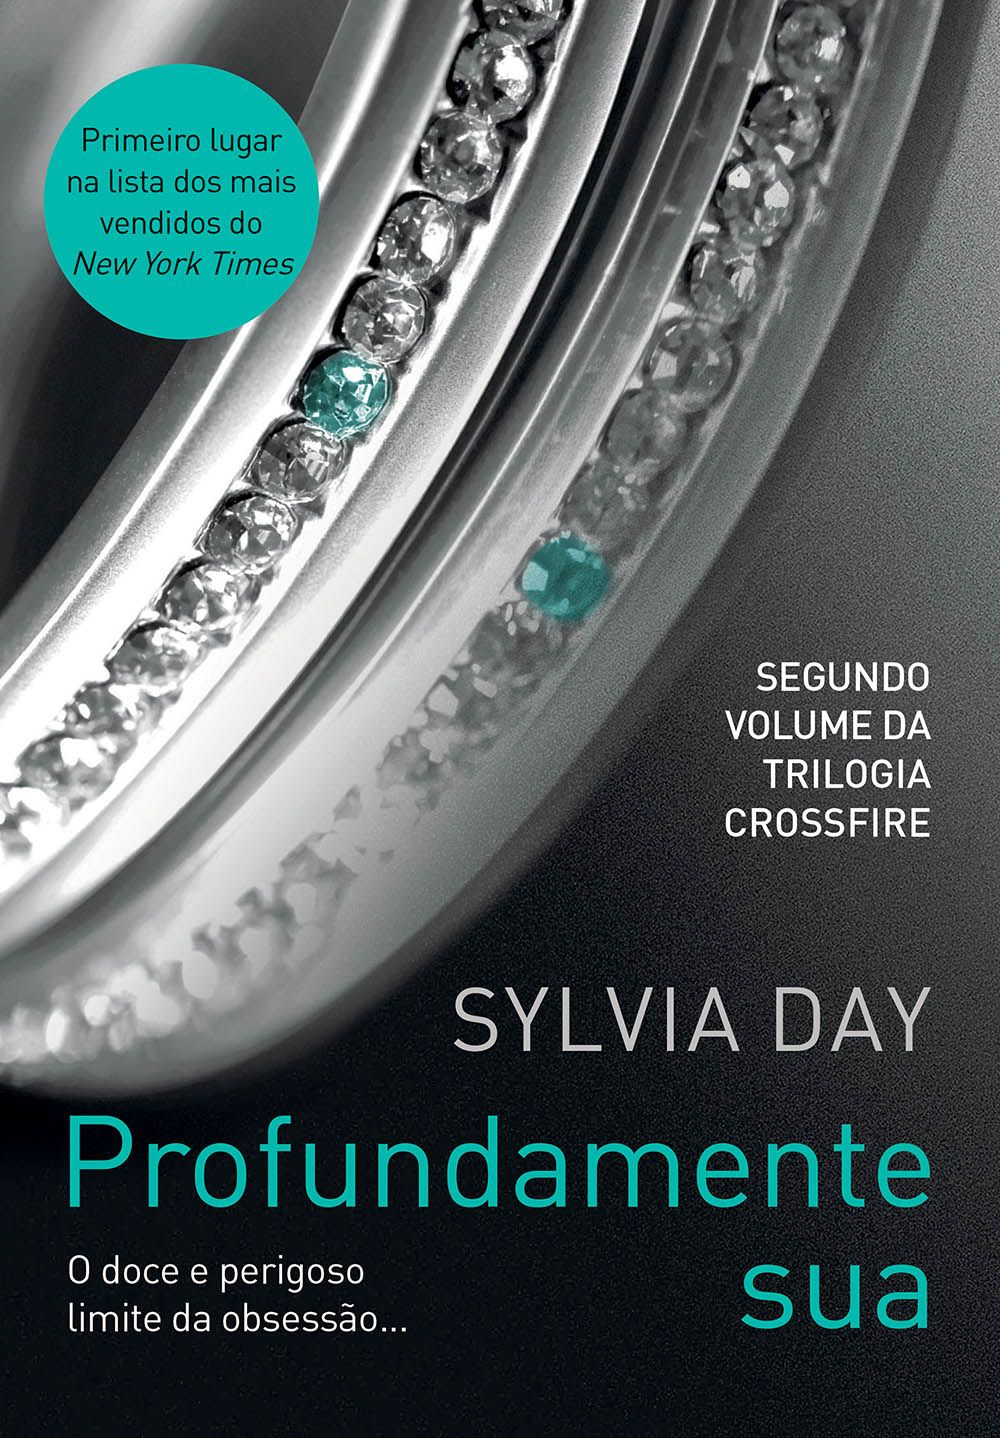 Download Profundamente Sua  Crossfire Vol 2  Sylvia Day Em Epub, Mobi, Pdf